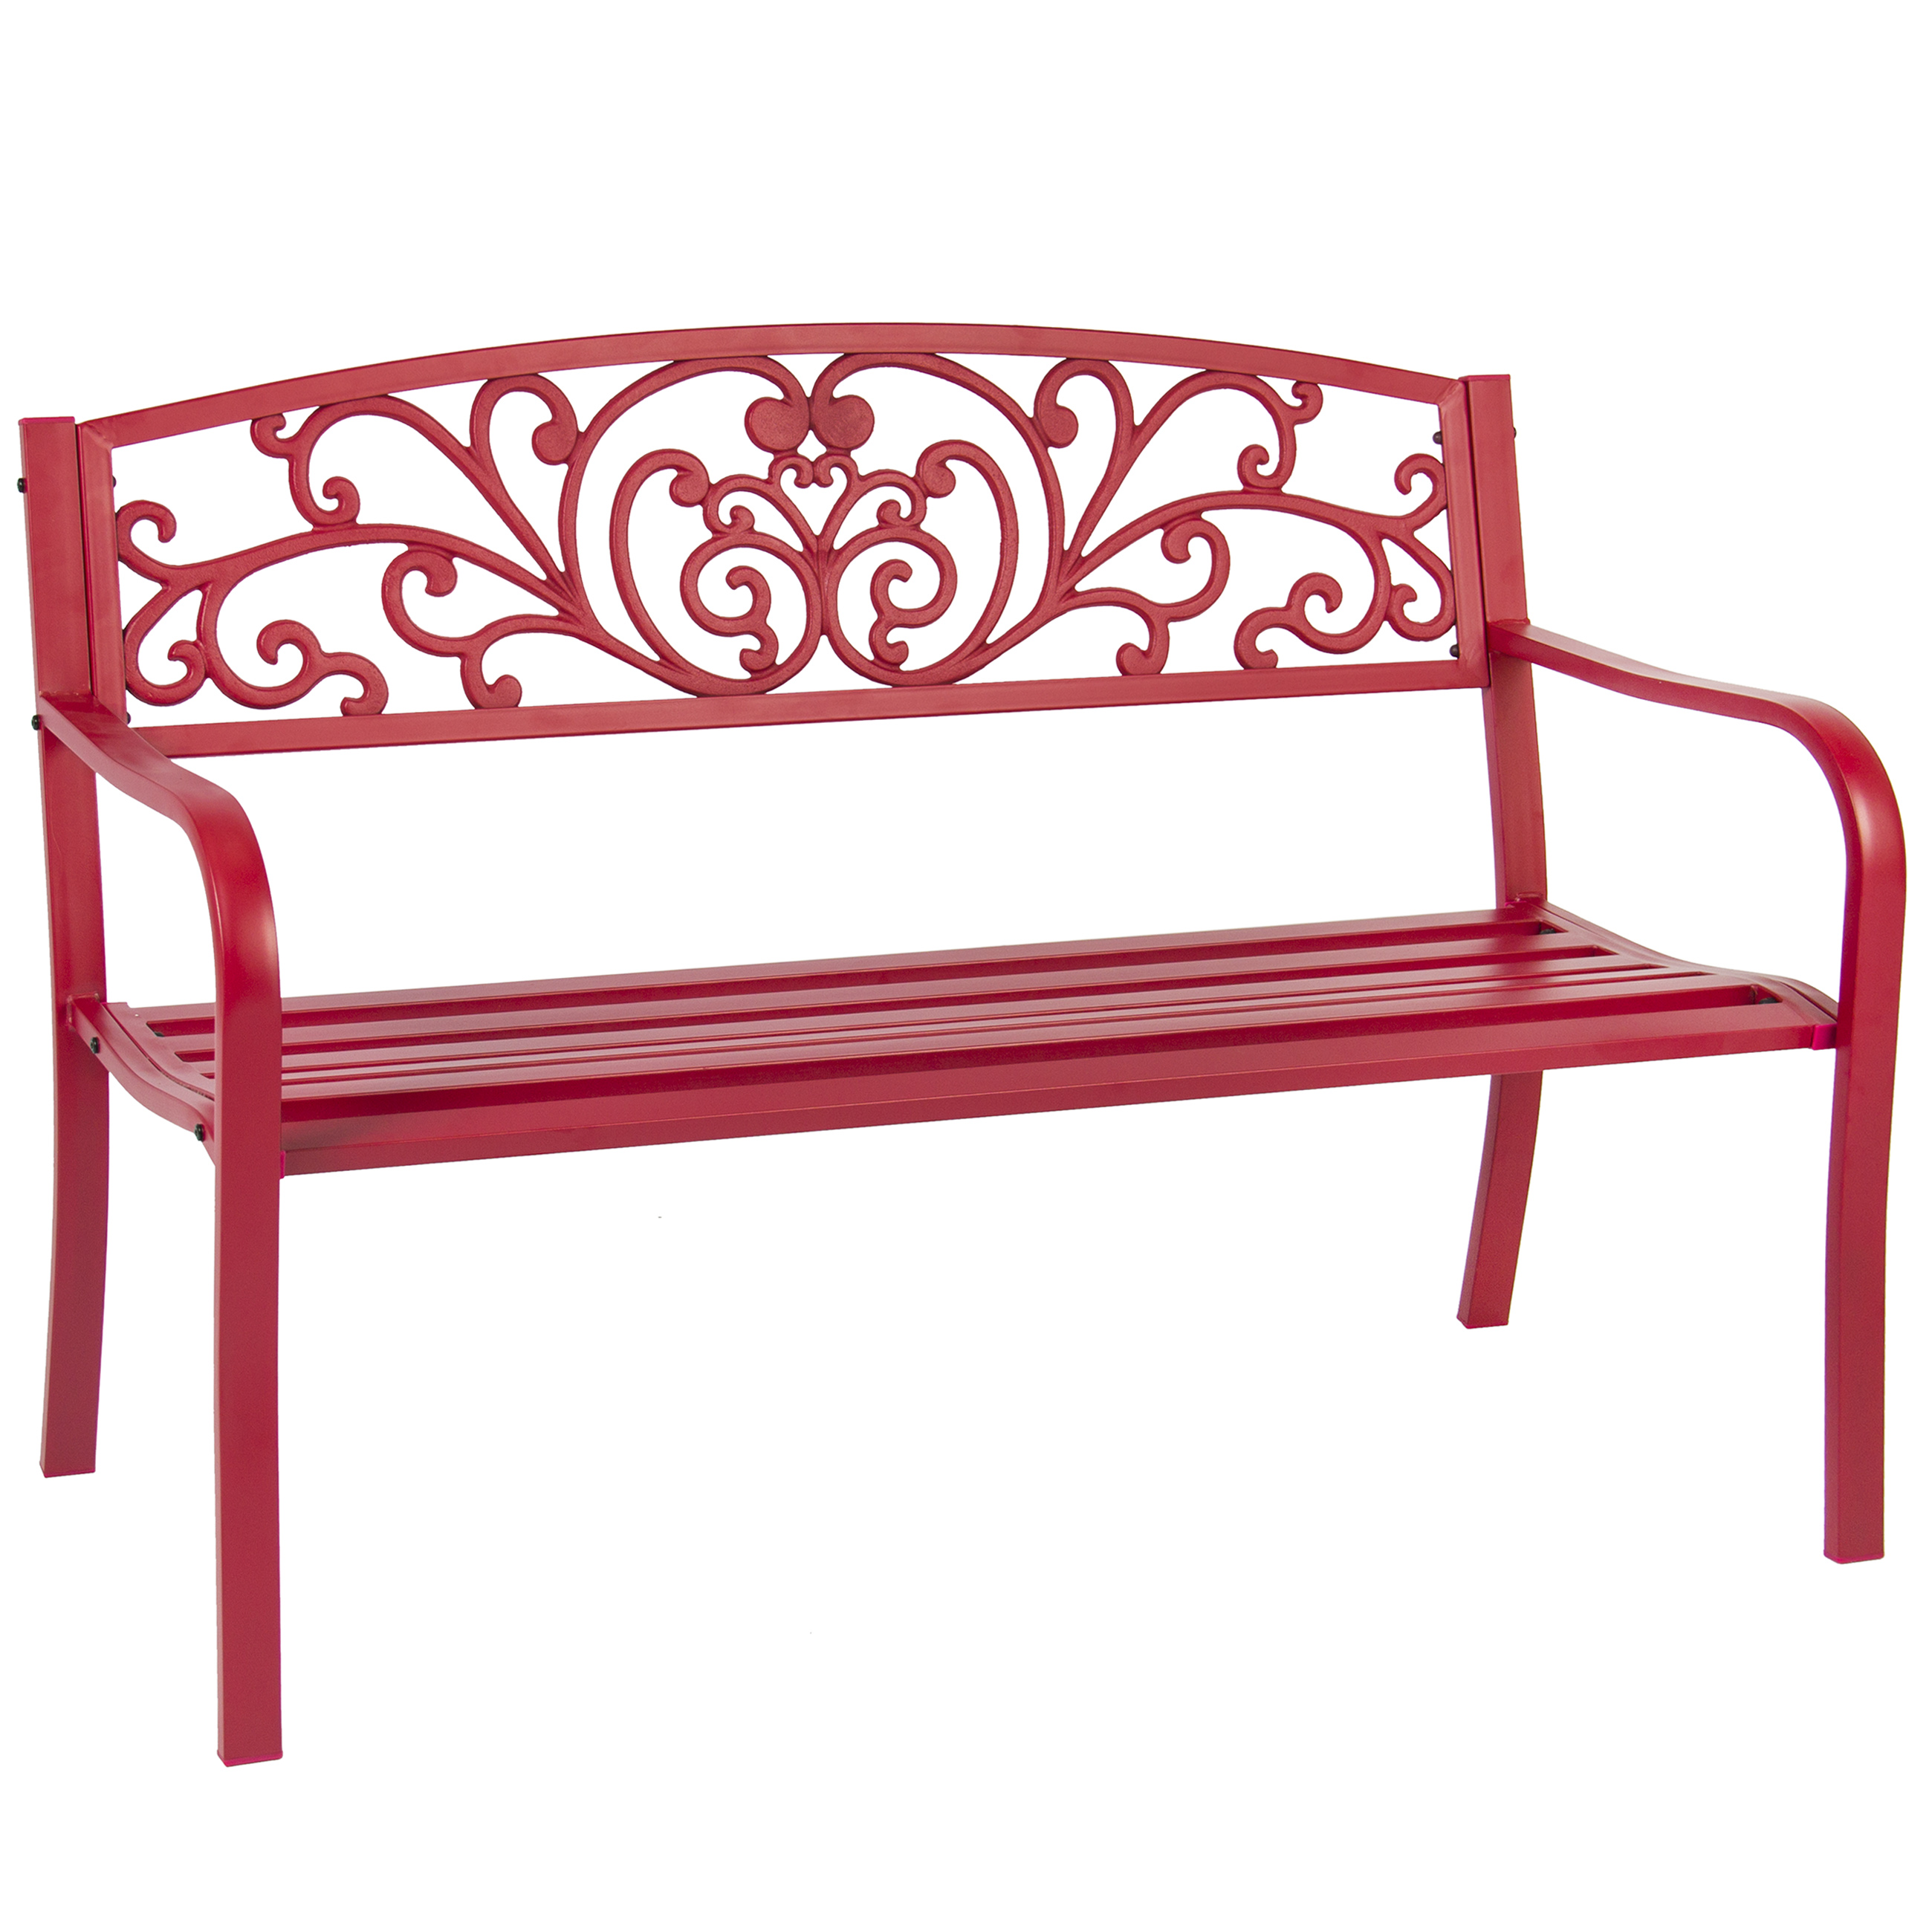 "Best Choice Products BCP 50"" Patio Garden Bench Park Yard Outdoor Furniture Steel... by Best Choice Products"